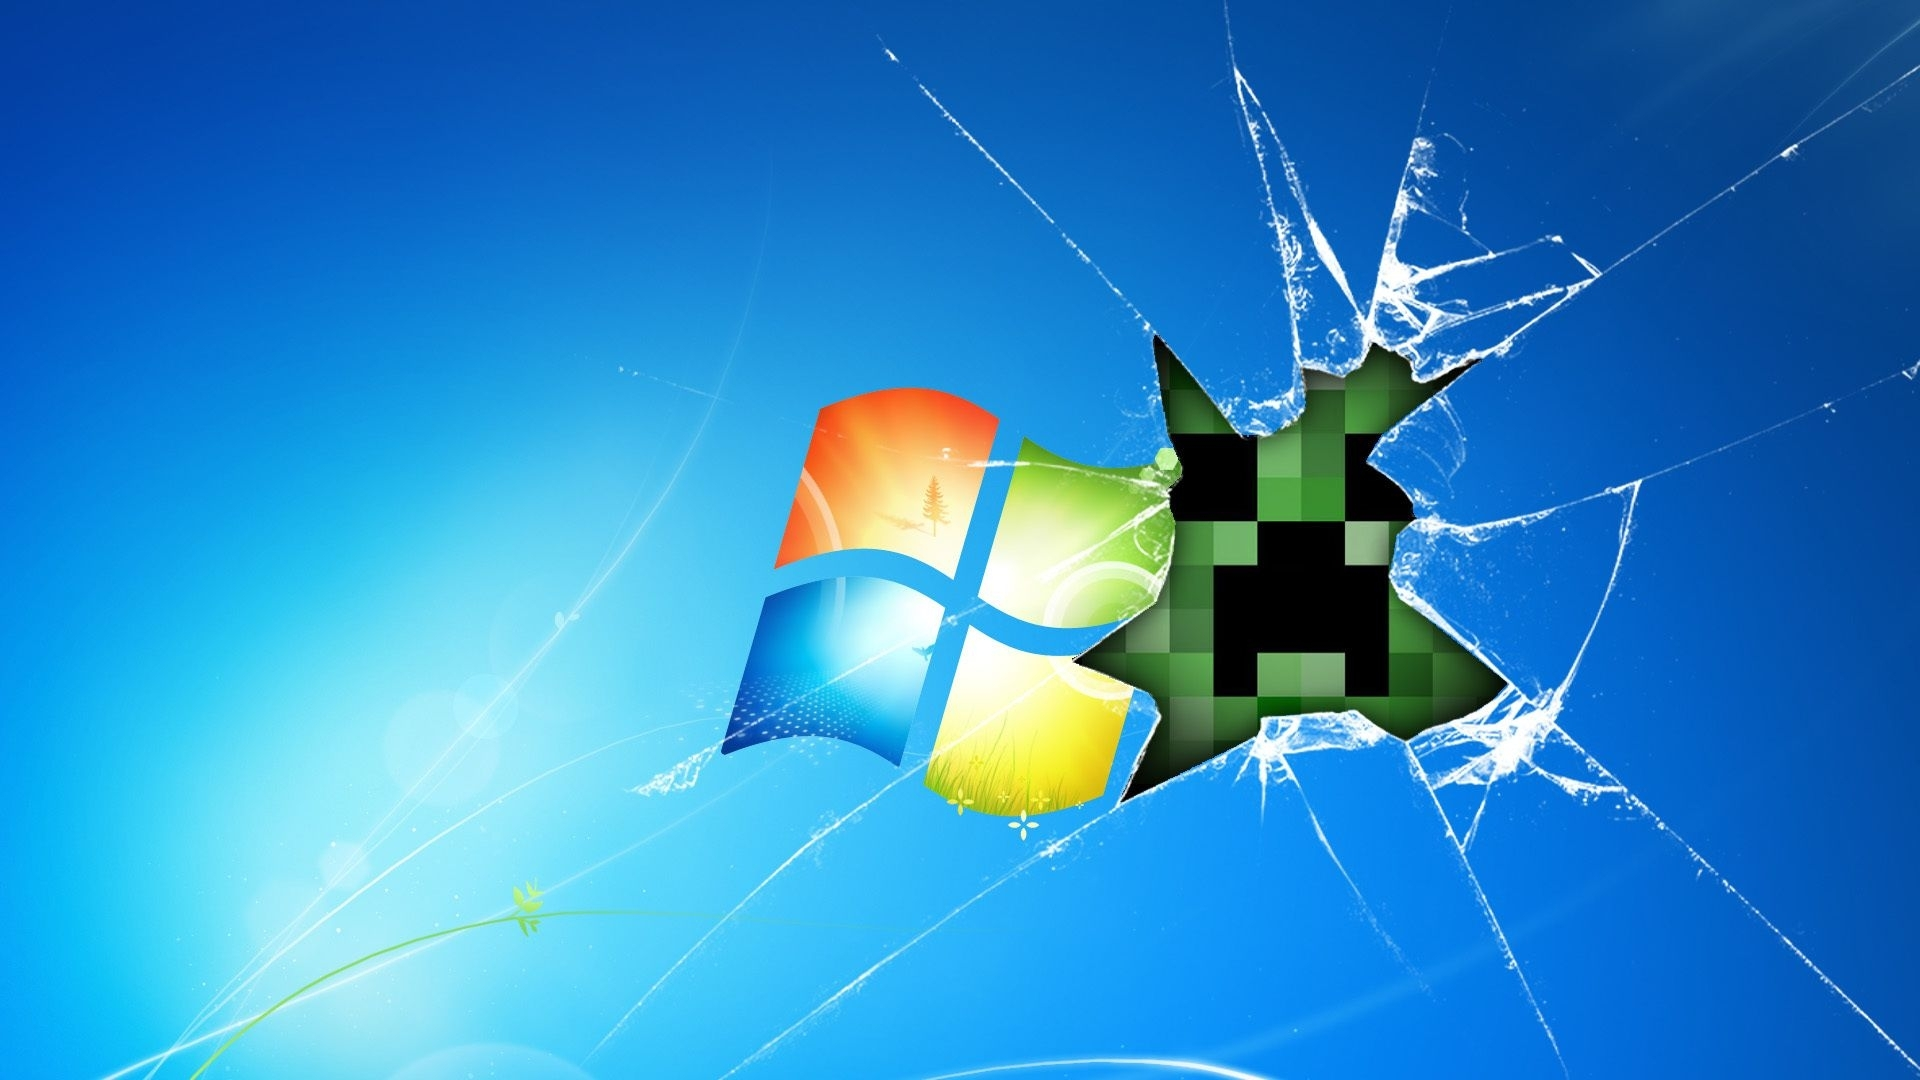 download wallpaper 1920x1080 windows, minecraft, game, glass